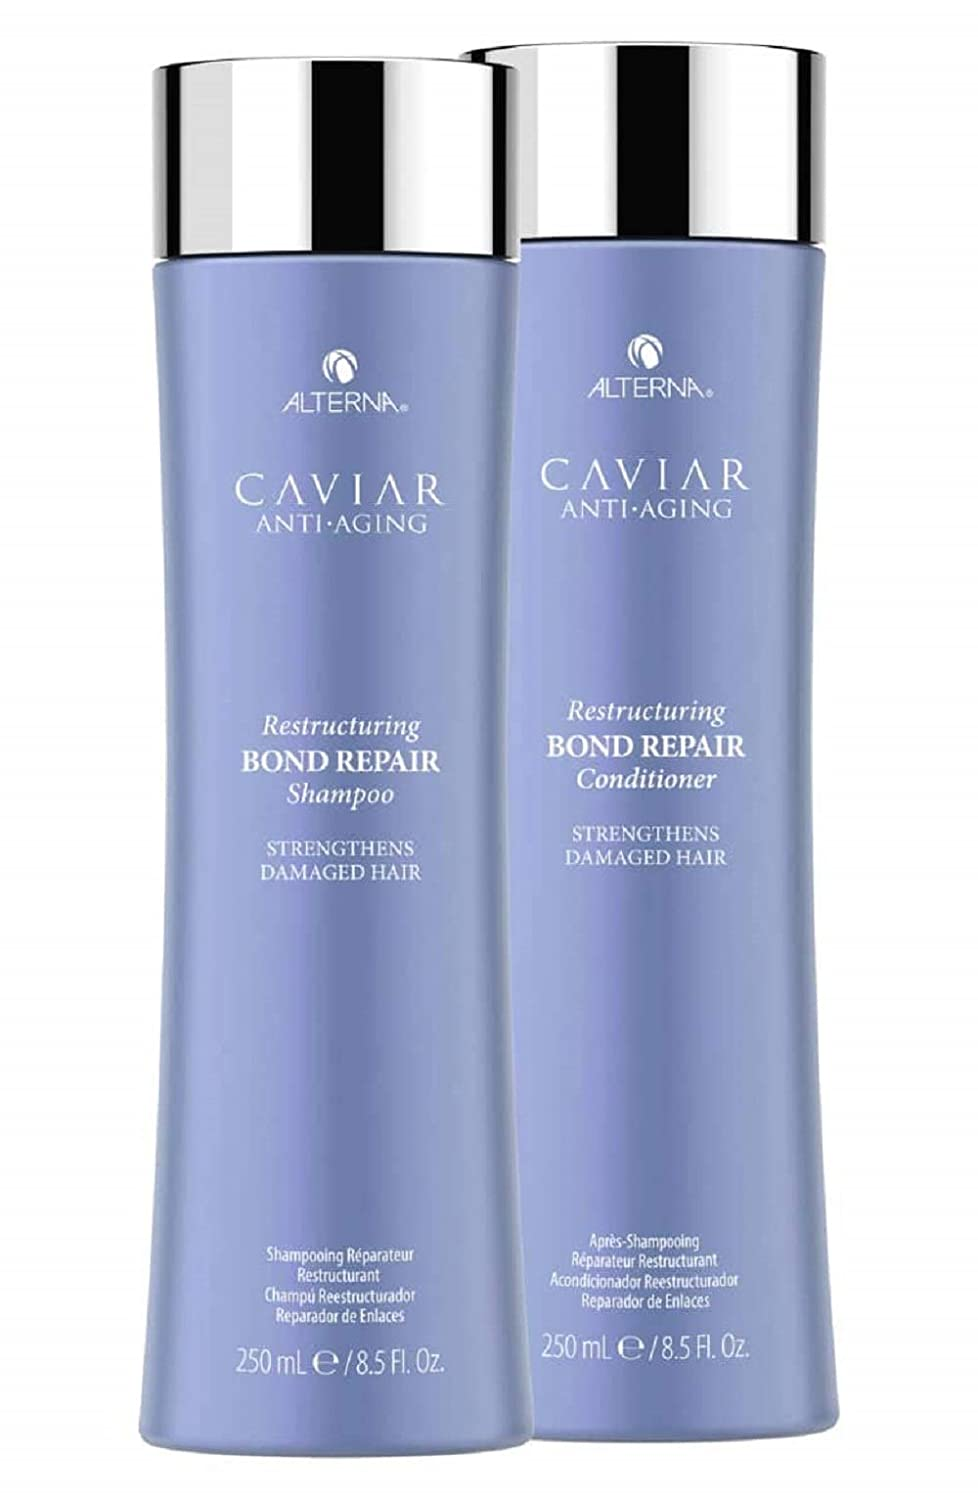 Today's only Alterna Caviar Anti-Aging Restructuring cheap Shampoo Bond Repair and